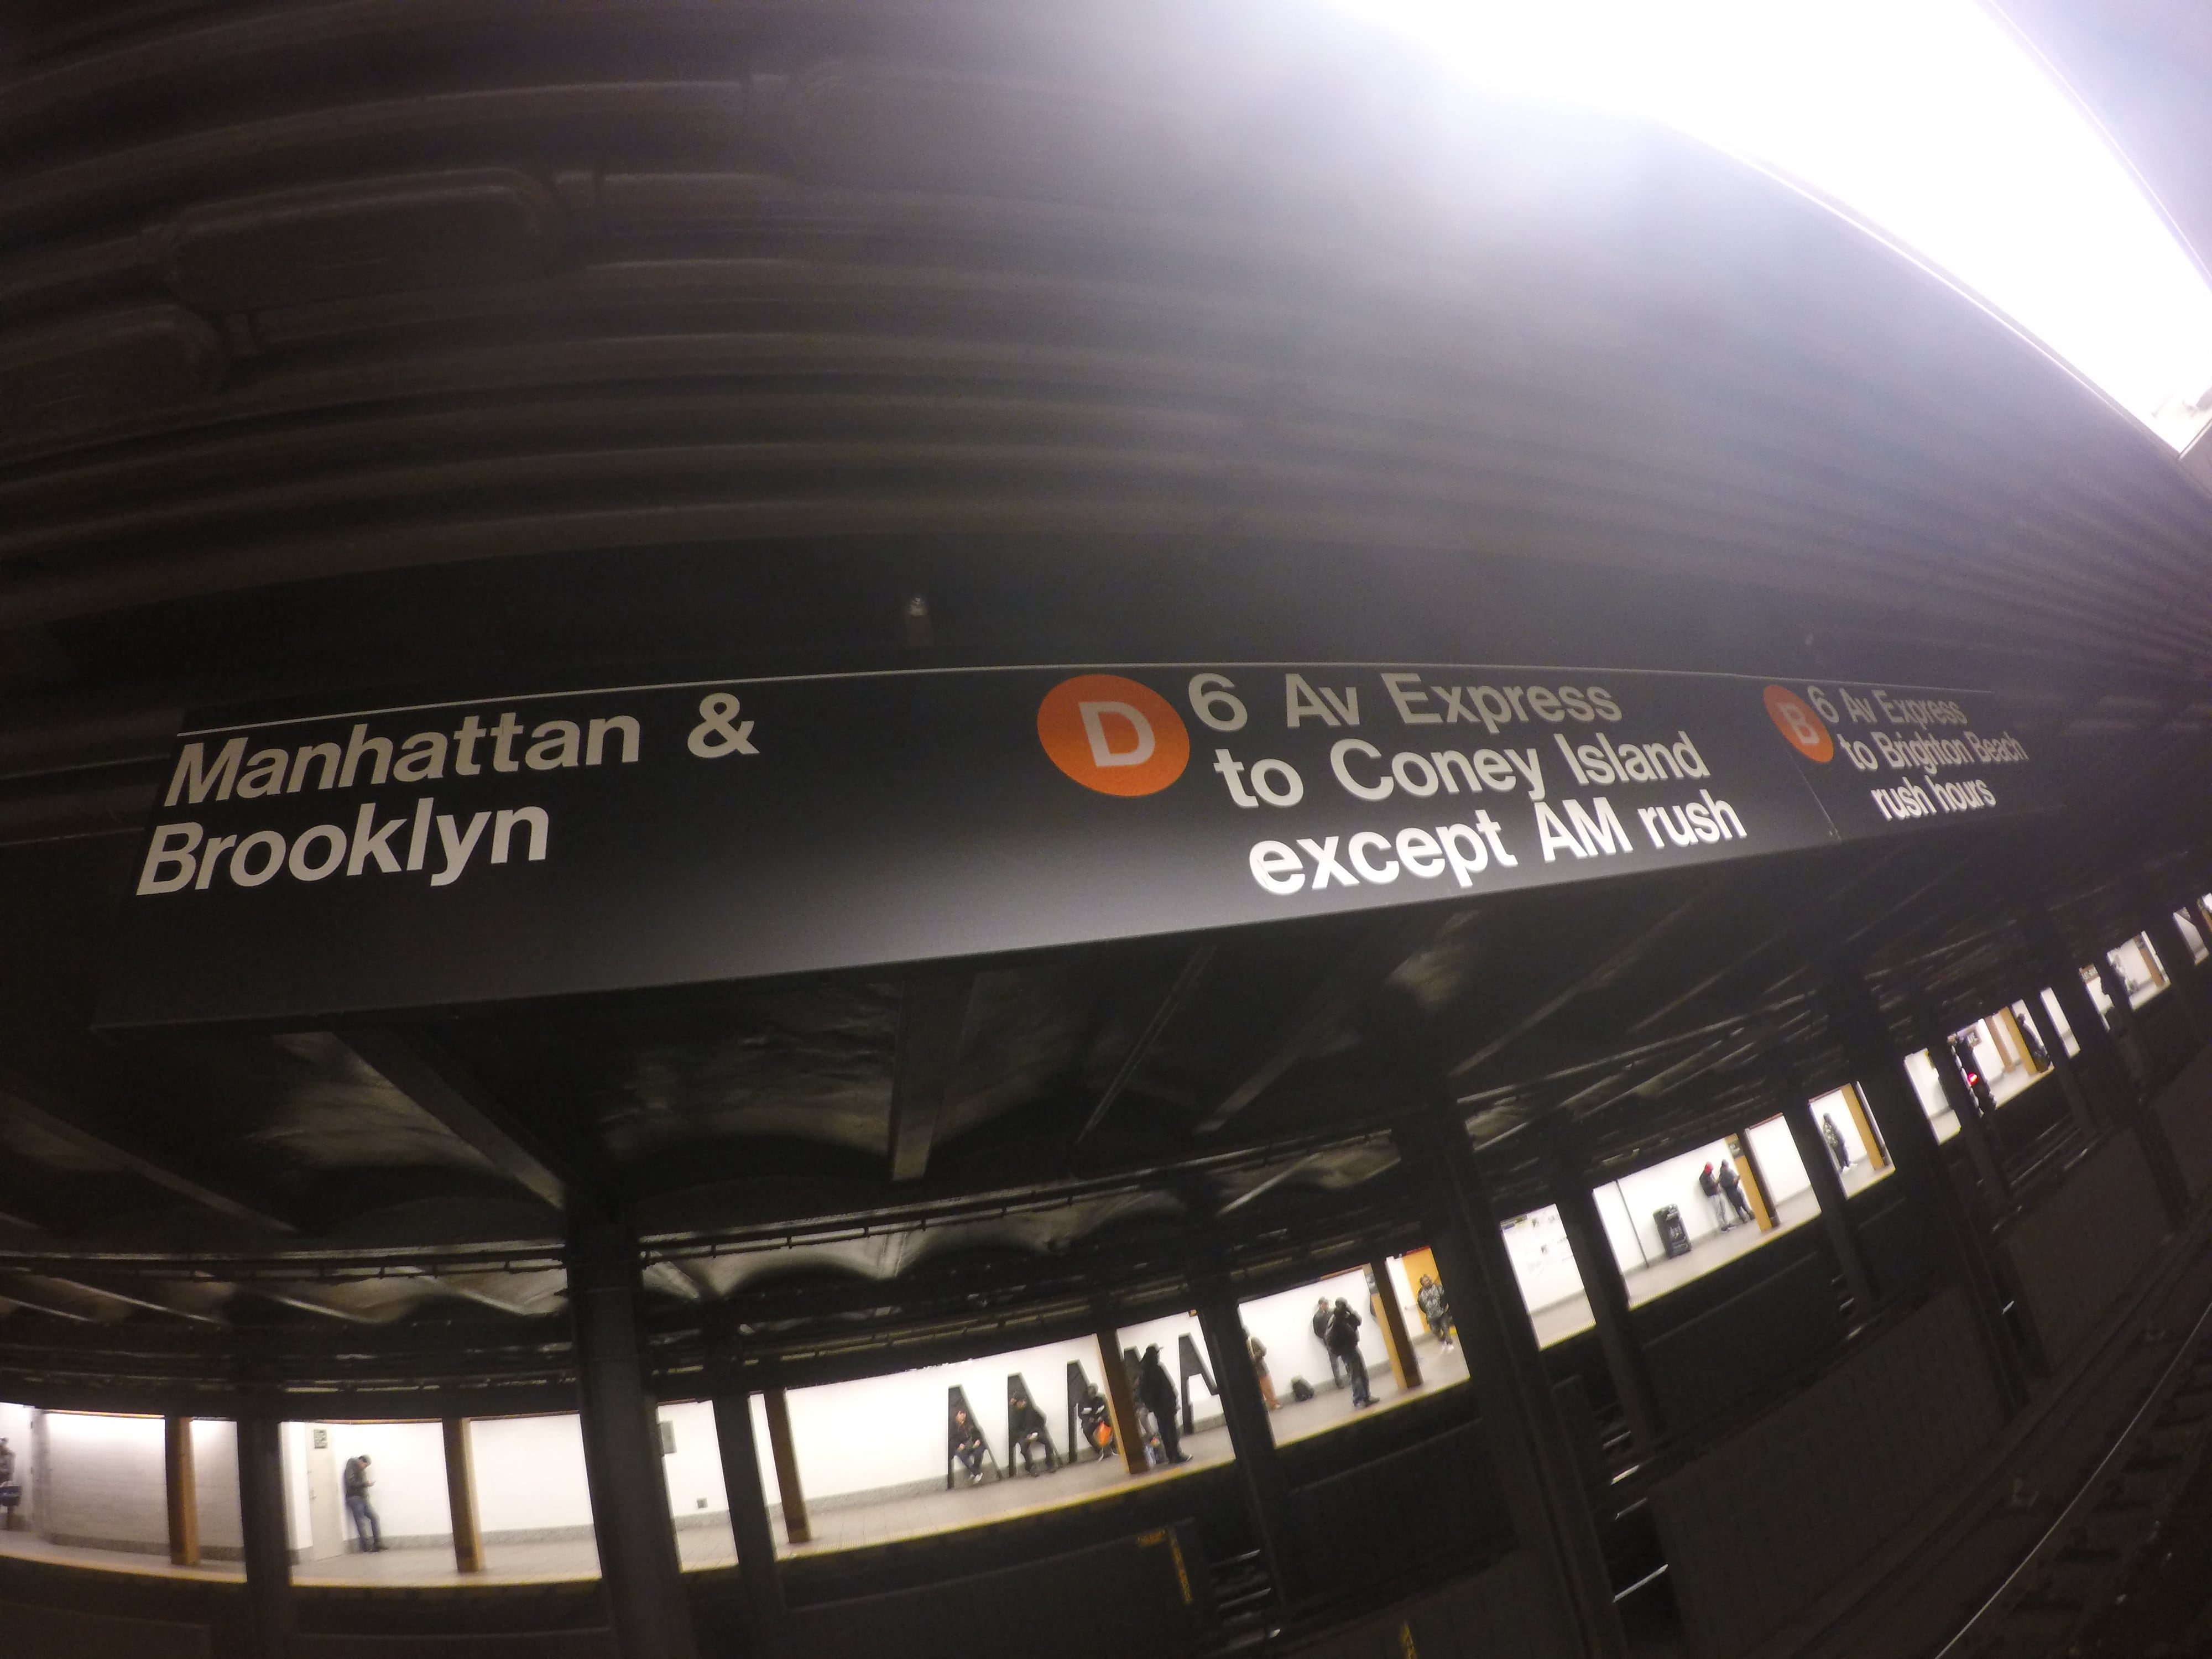 Sign for Manhattan & Brooklyn in New York subway station